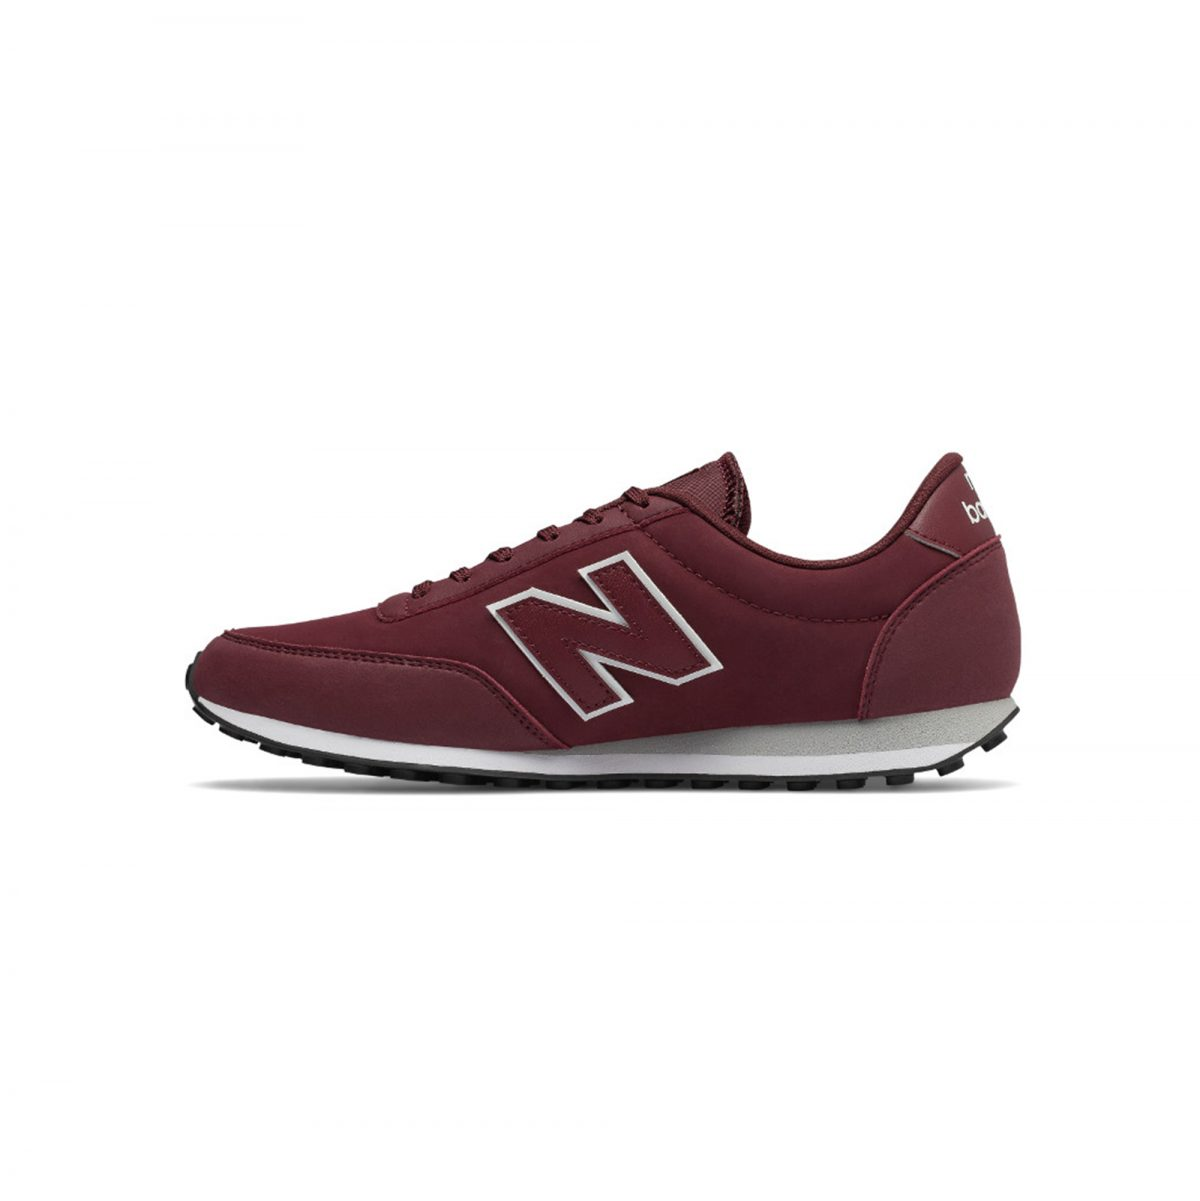 Zapatillas NEW BALANCE GRANATE ideales para un estilo casual